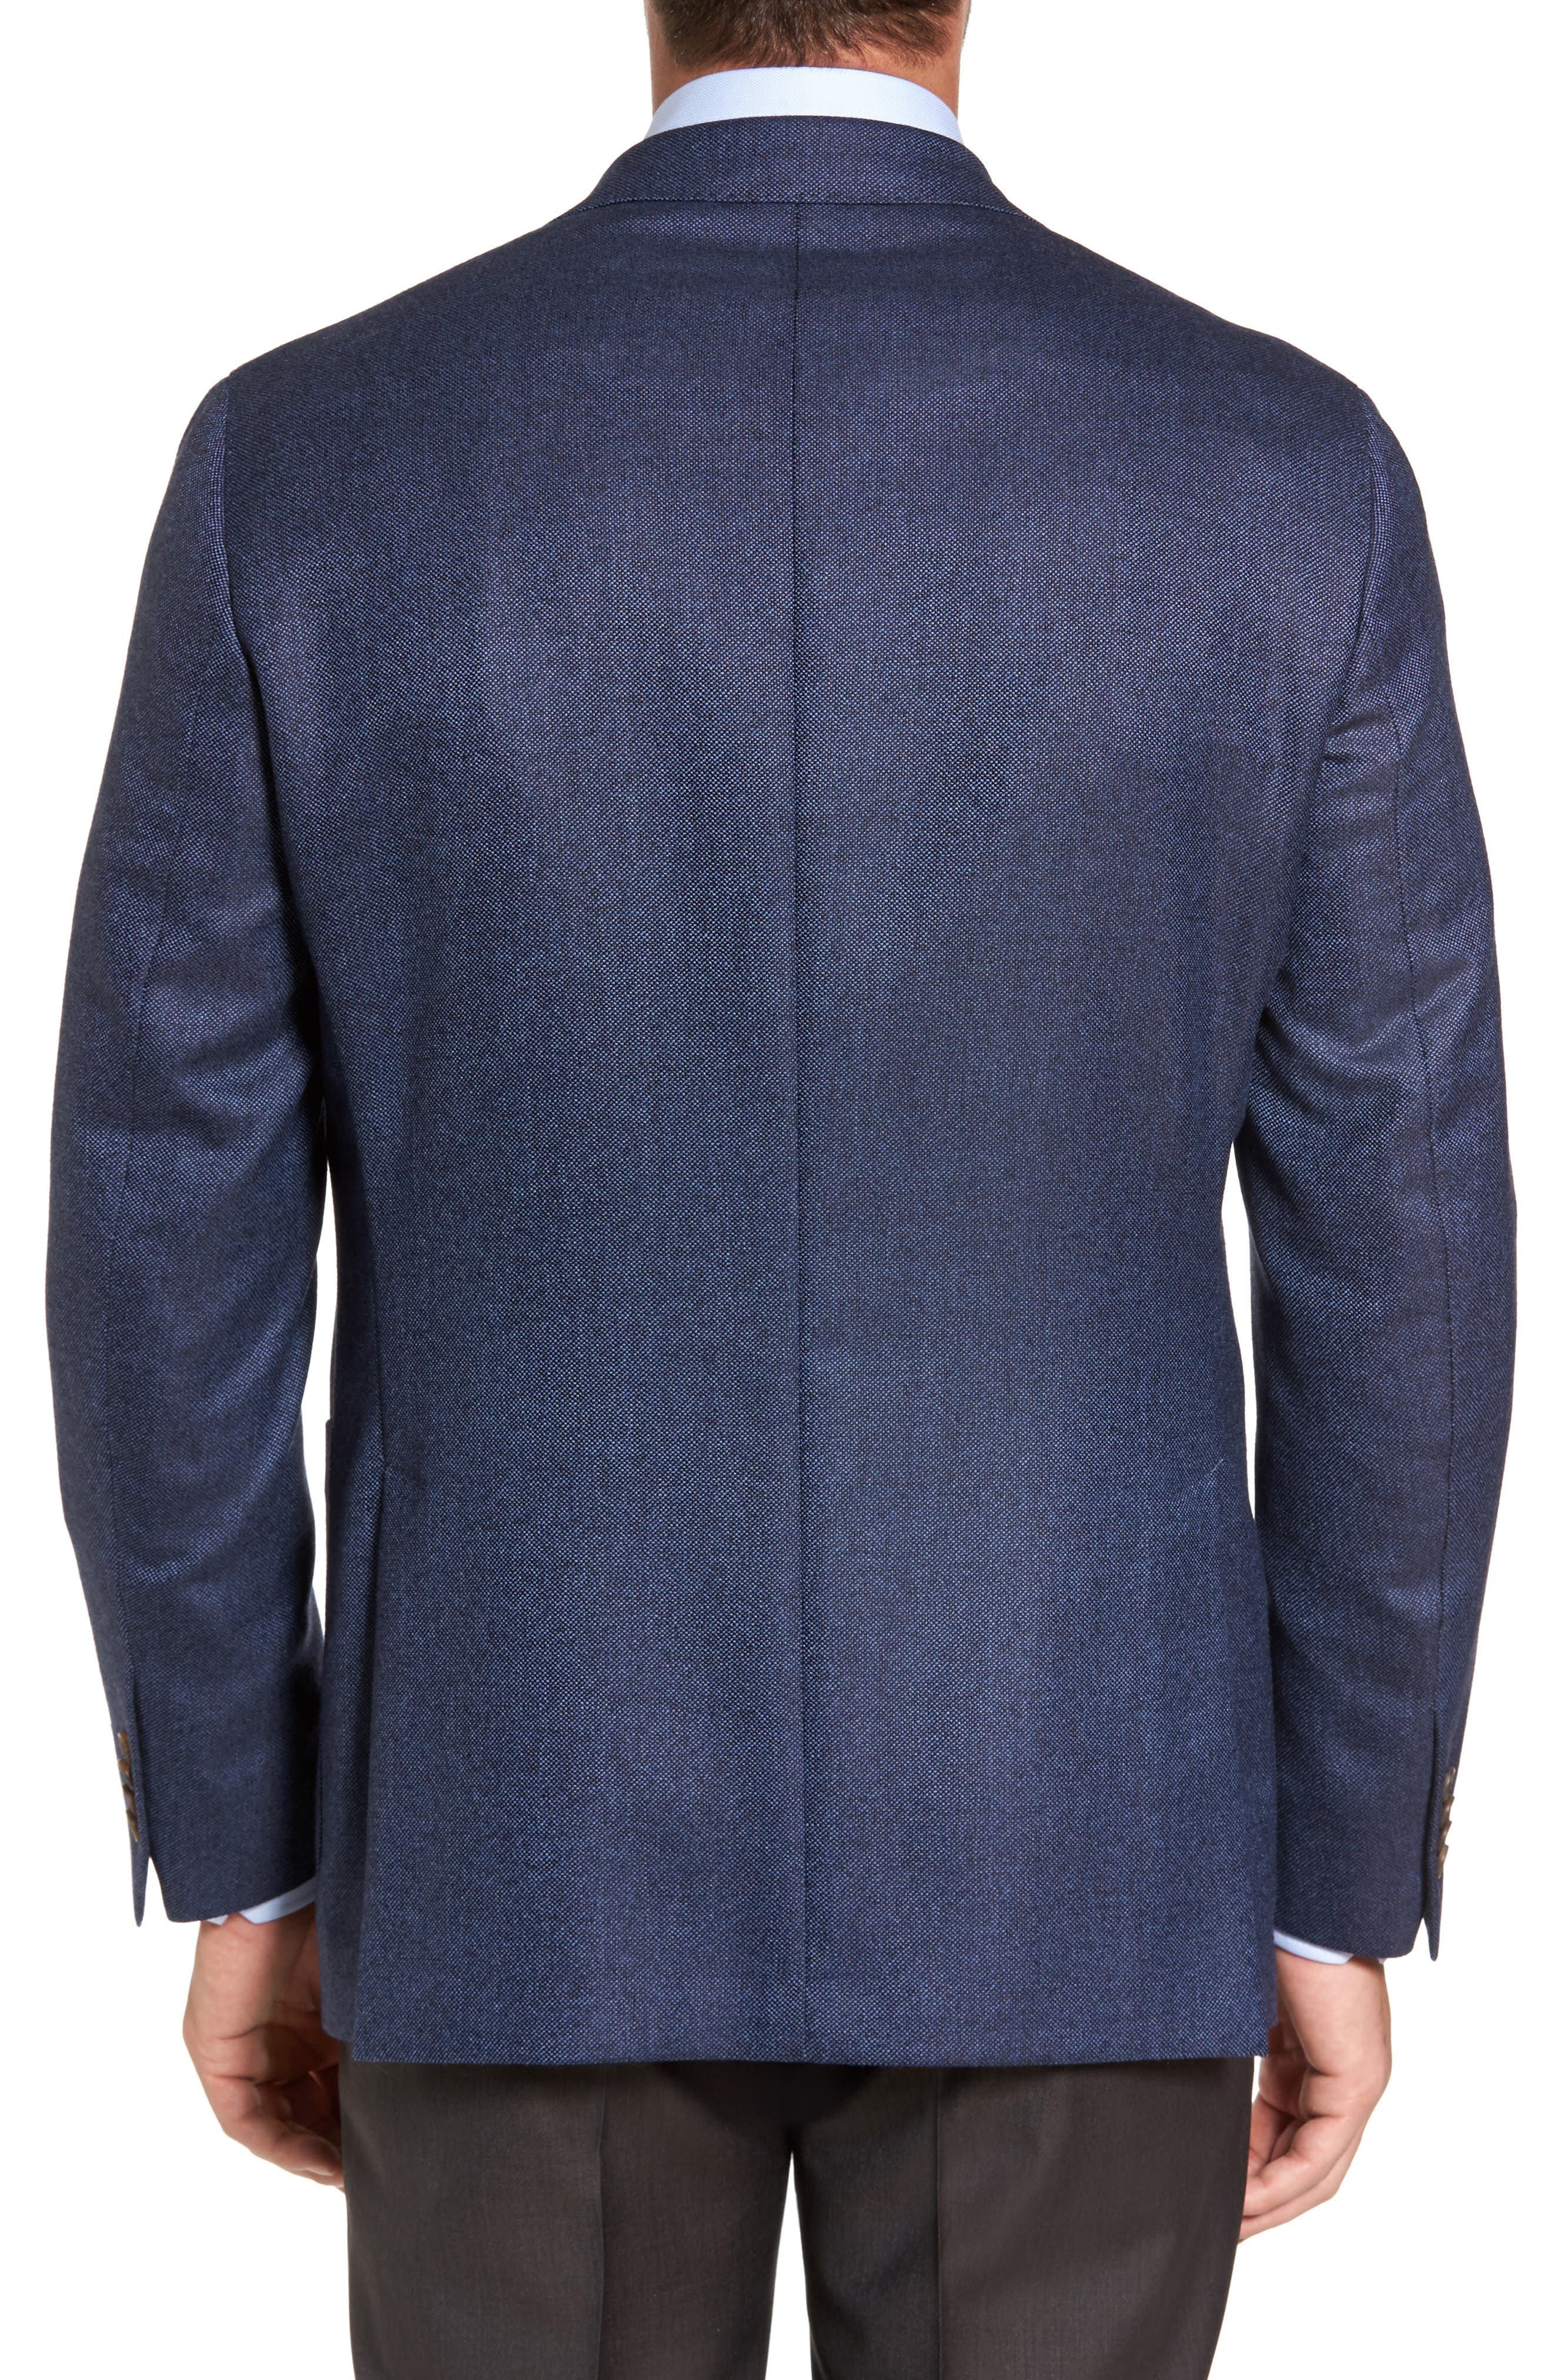 Aiden Classic Fit Wool Blazer,                             Alternate thumbnail 2, color,                             400